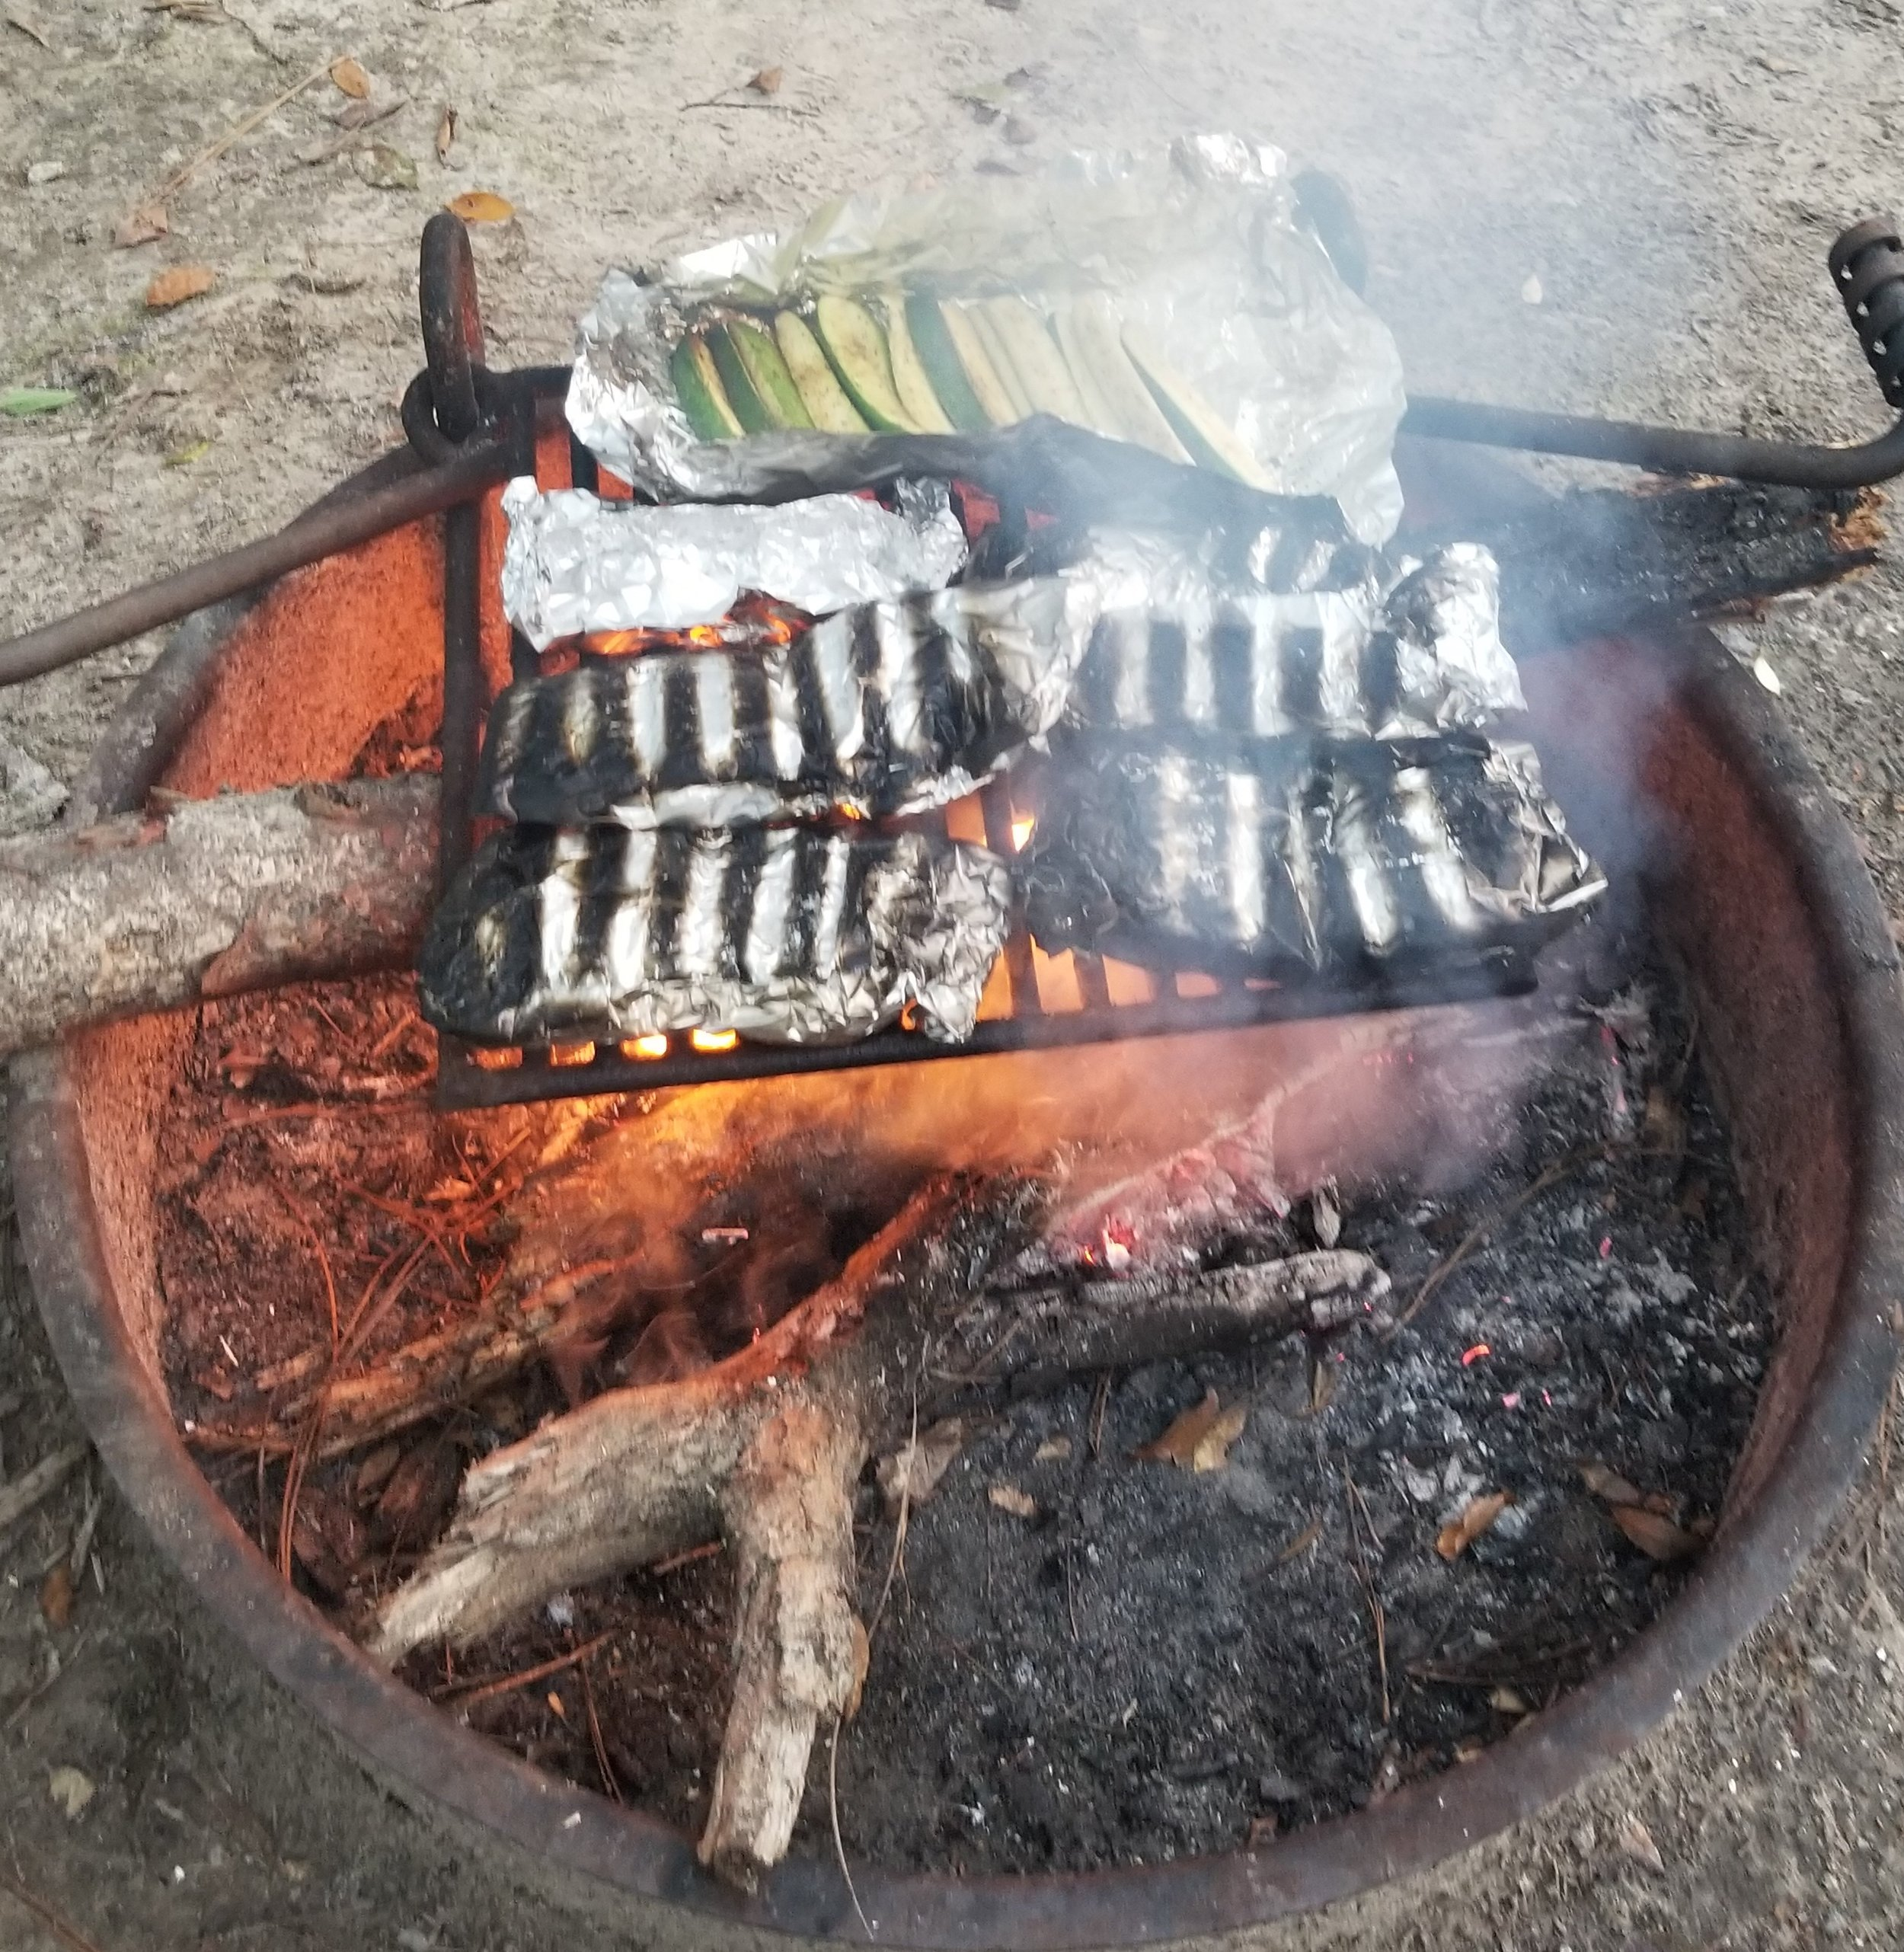 Campfire dinner of chicken, fish and zucchini